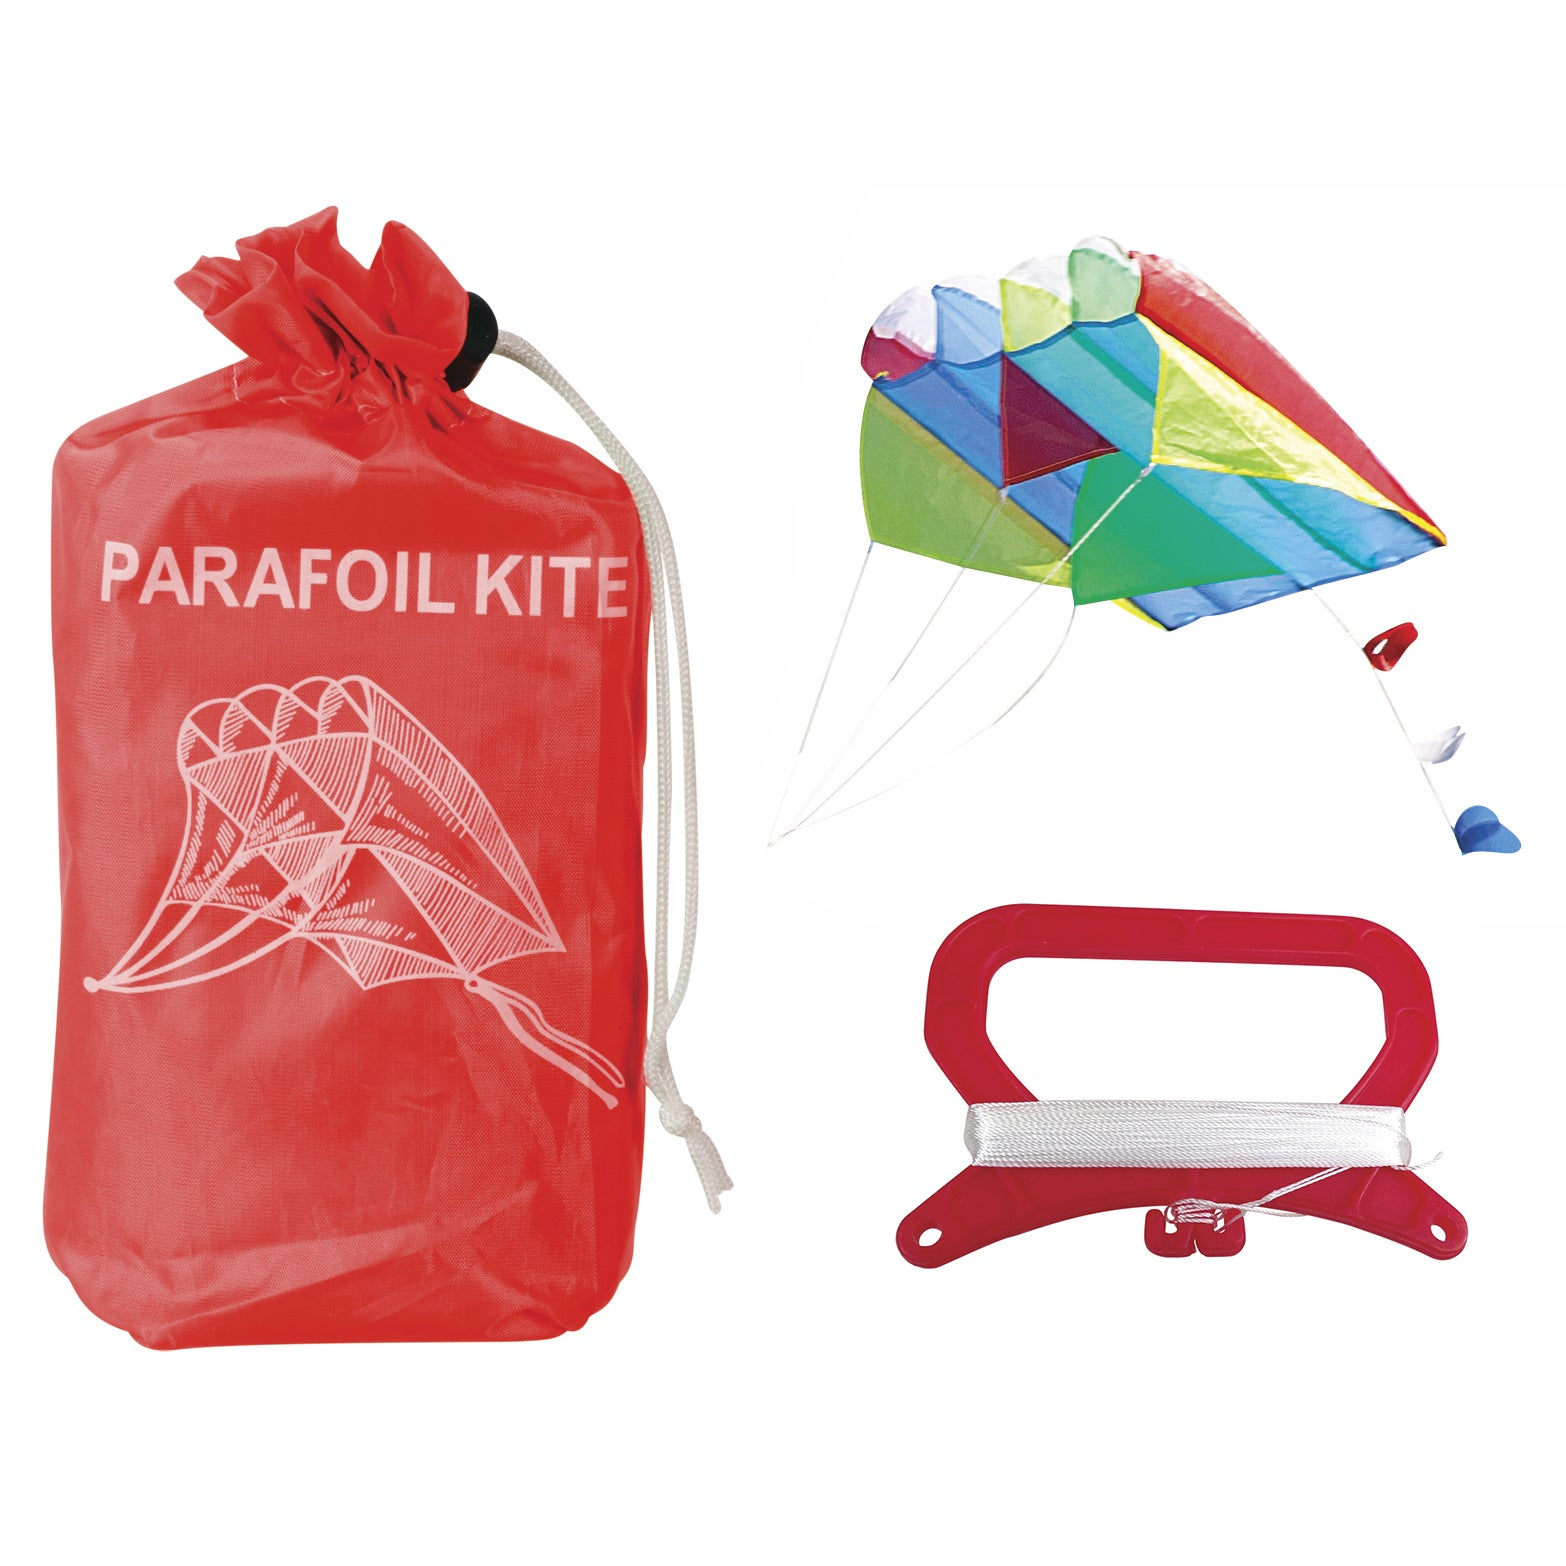 Toysmith 1997 Parafoil Kite Assorted Colors (Parafoil Kite)